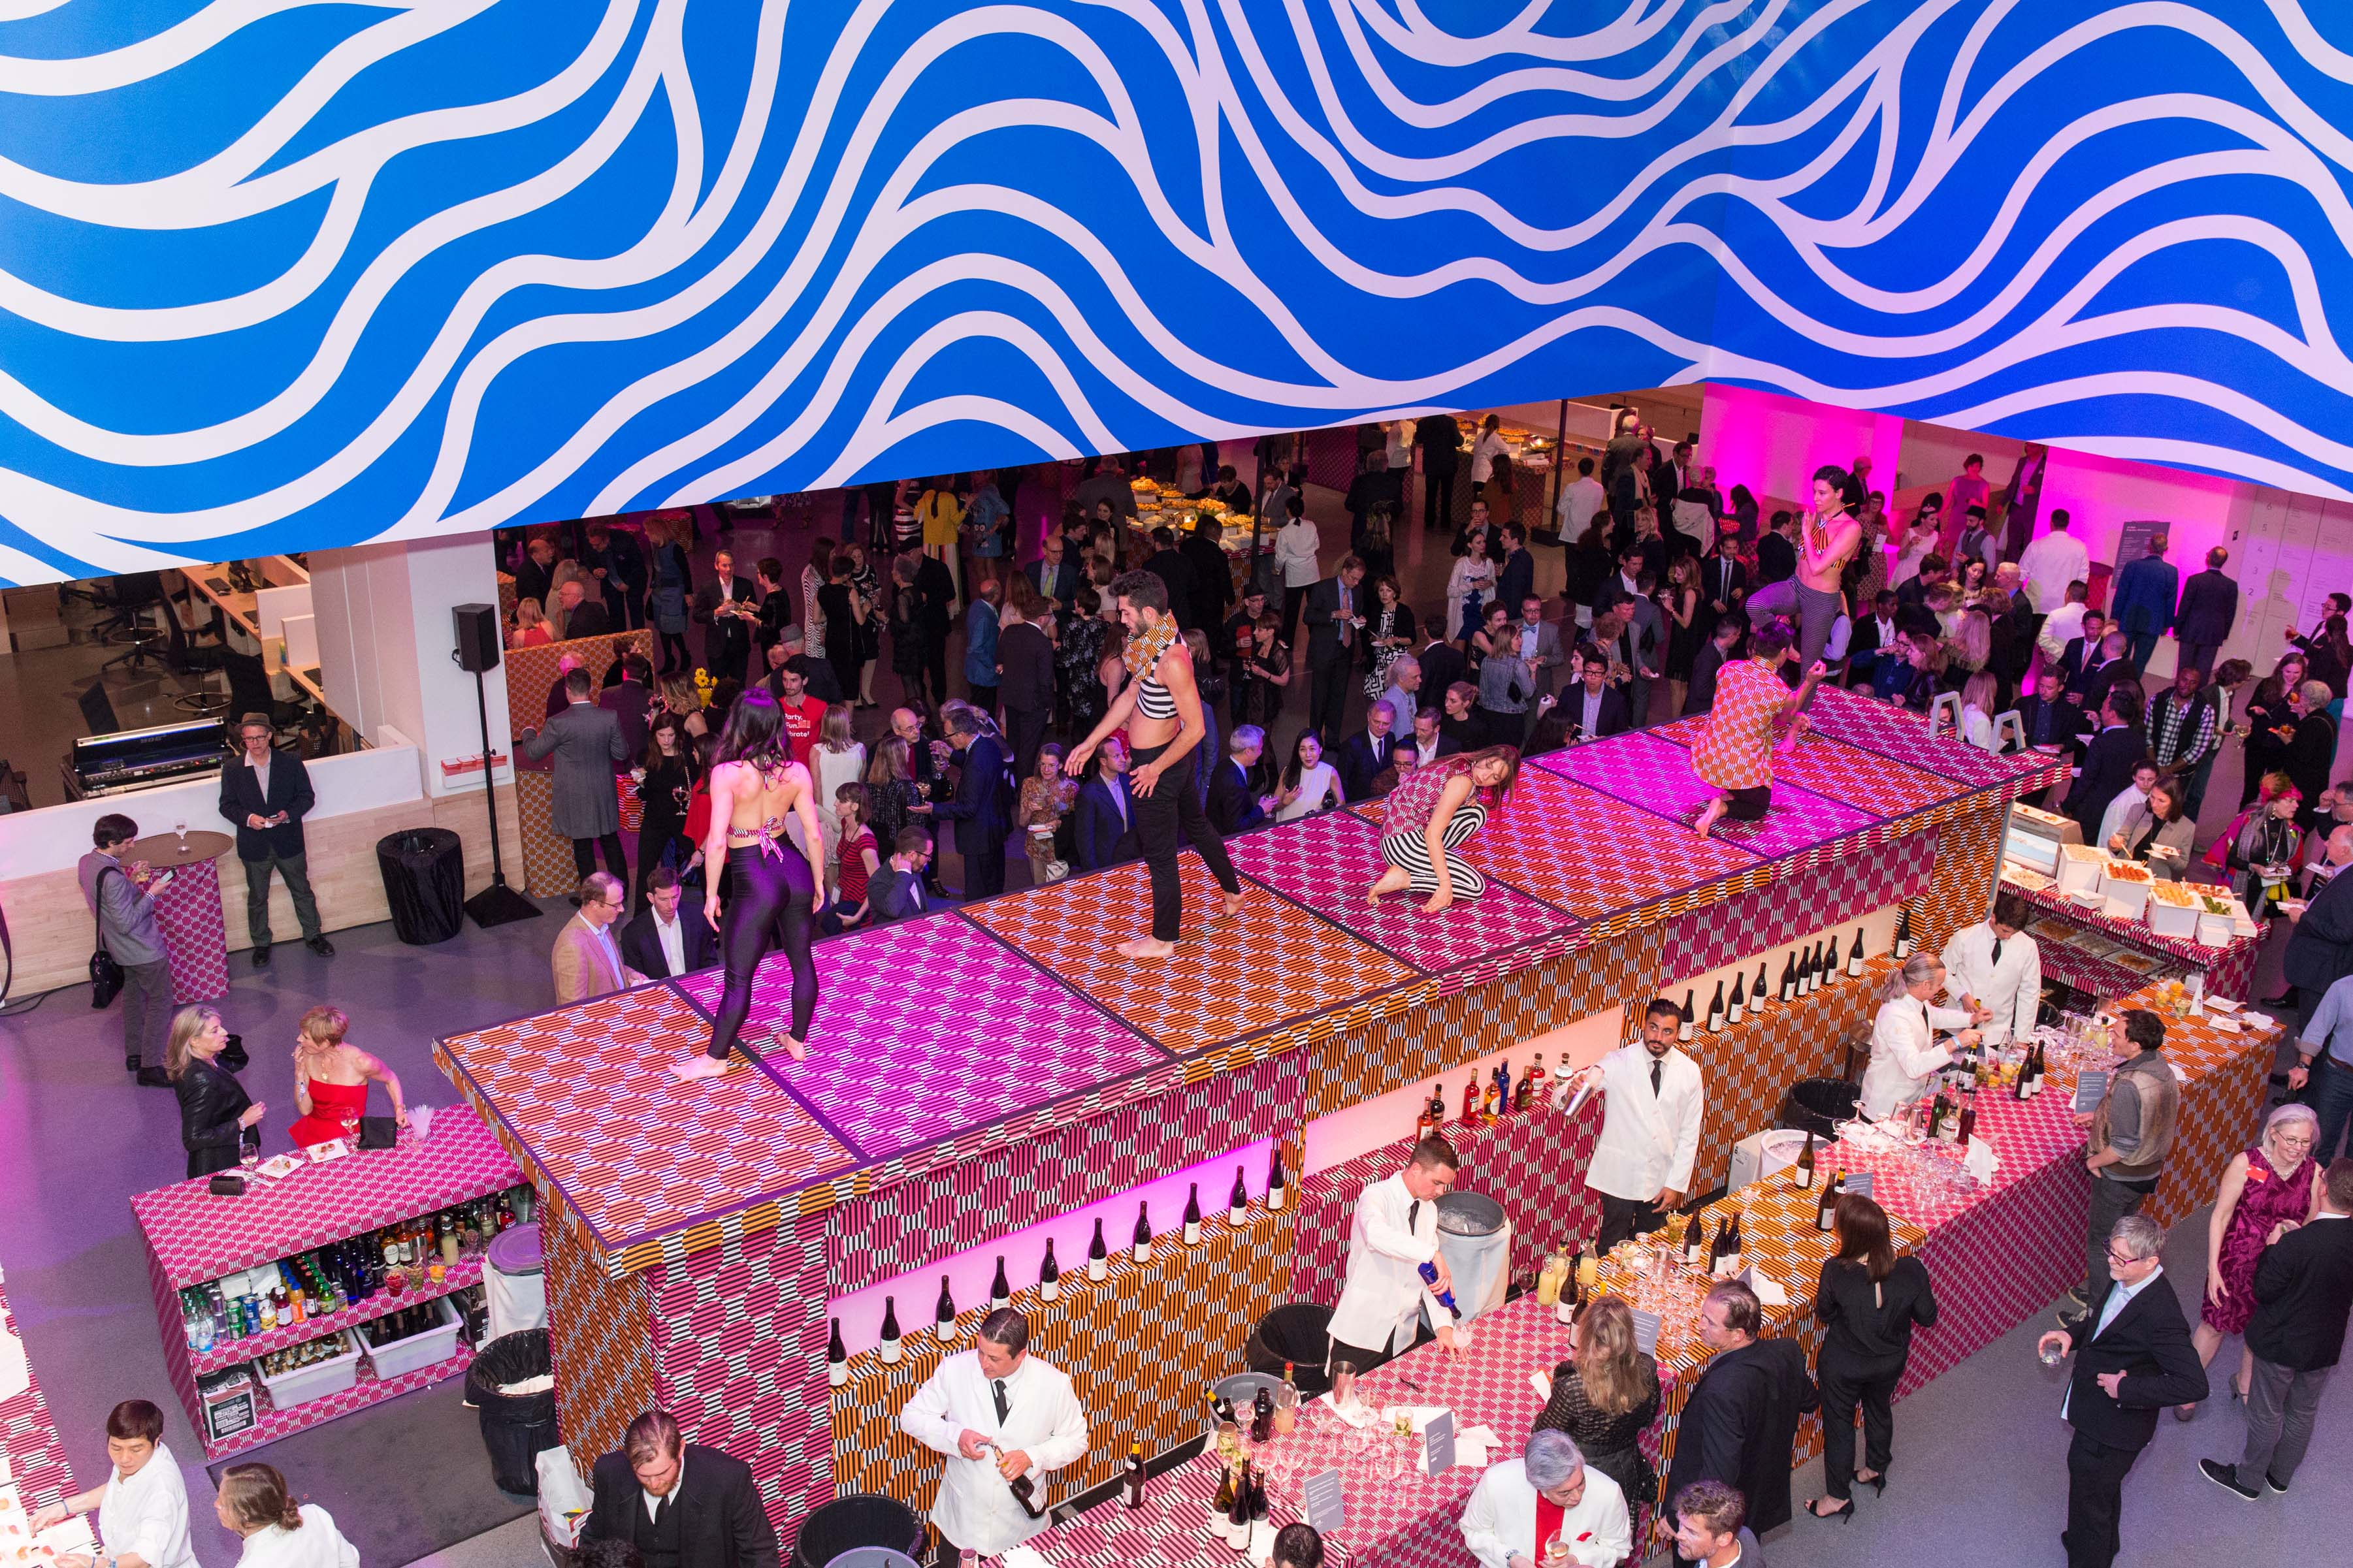 The center of the action was Schwab Hall, where dancers performed on a stage above a long double-sided bar while guests sipped drinks and dined on innovative appetizers.